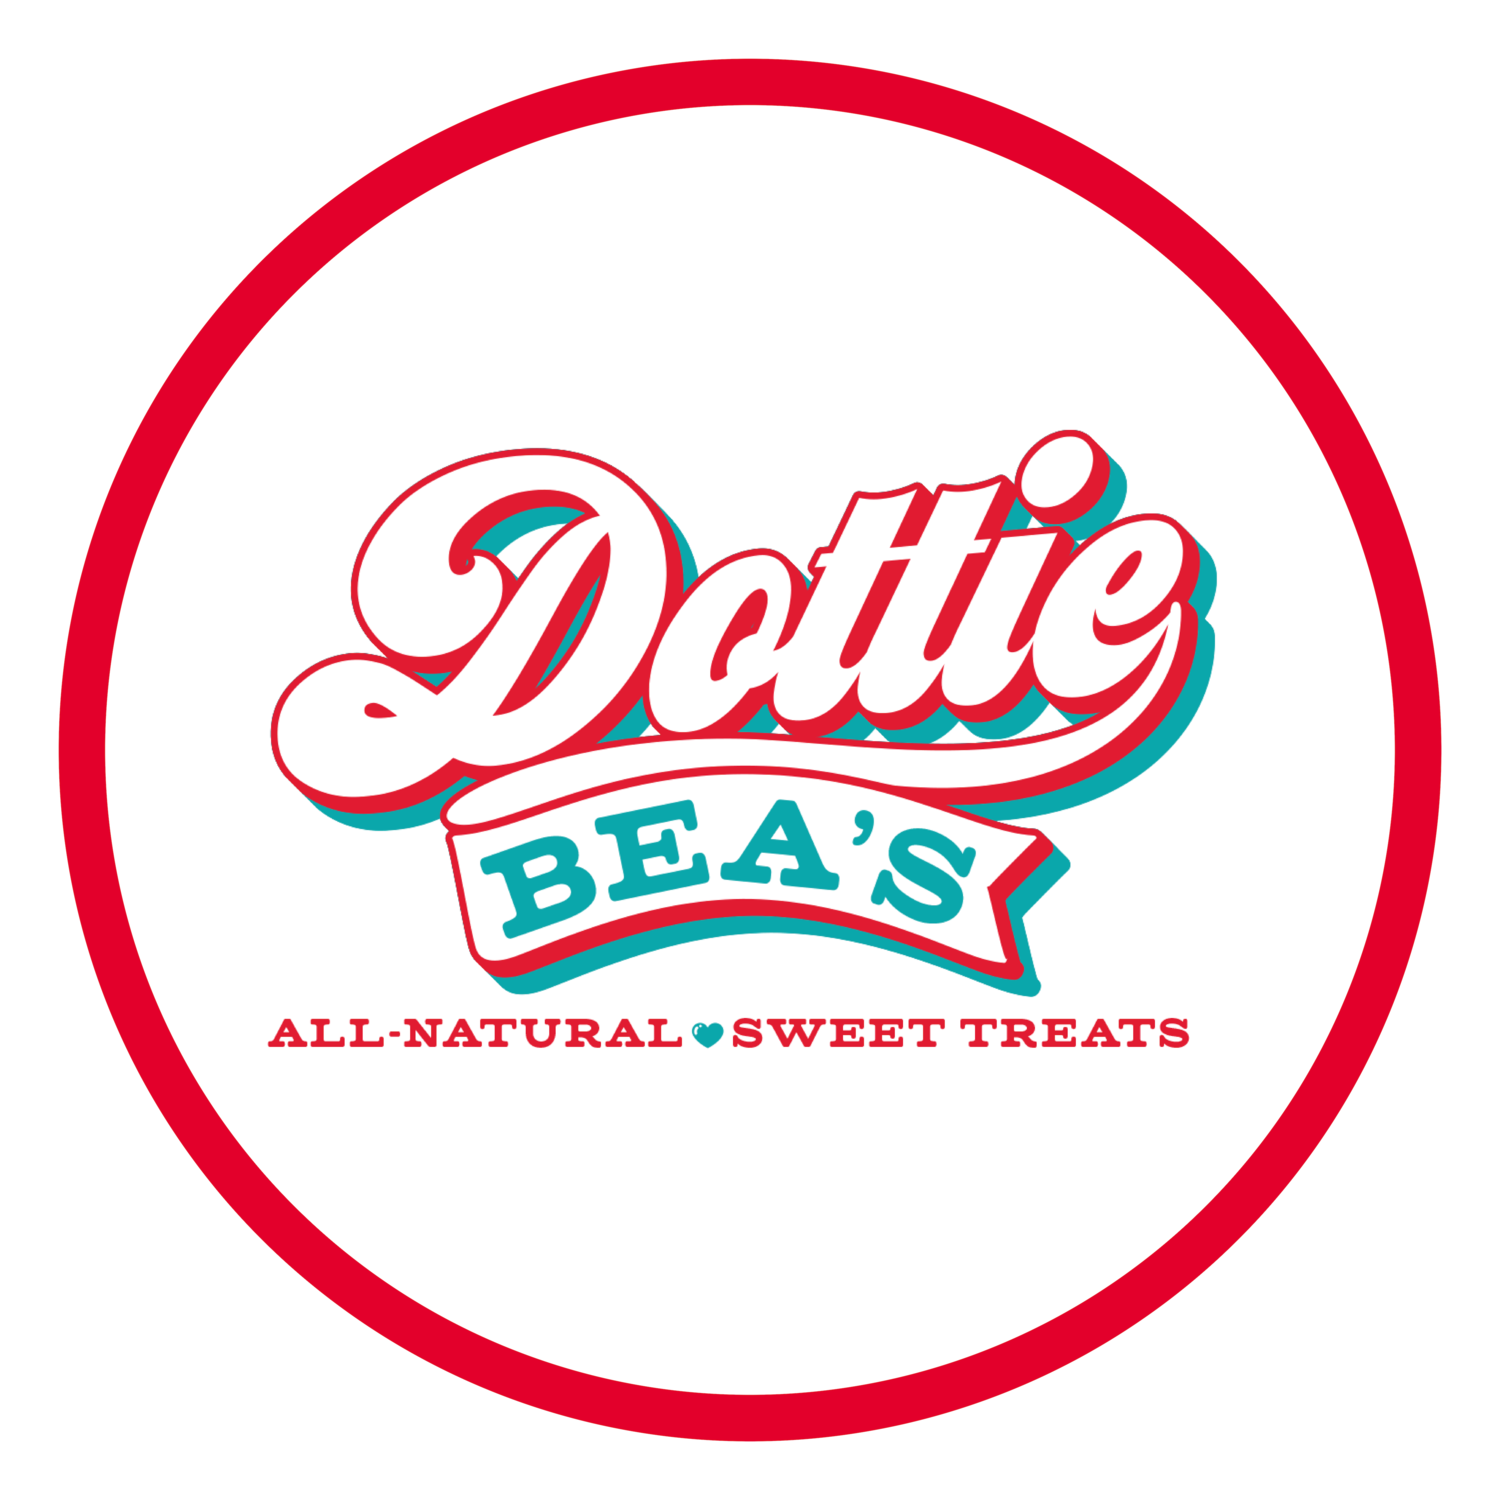 Dottie Bea's All-Natural Sweet Treats